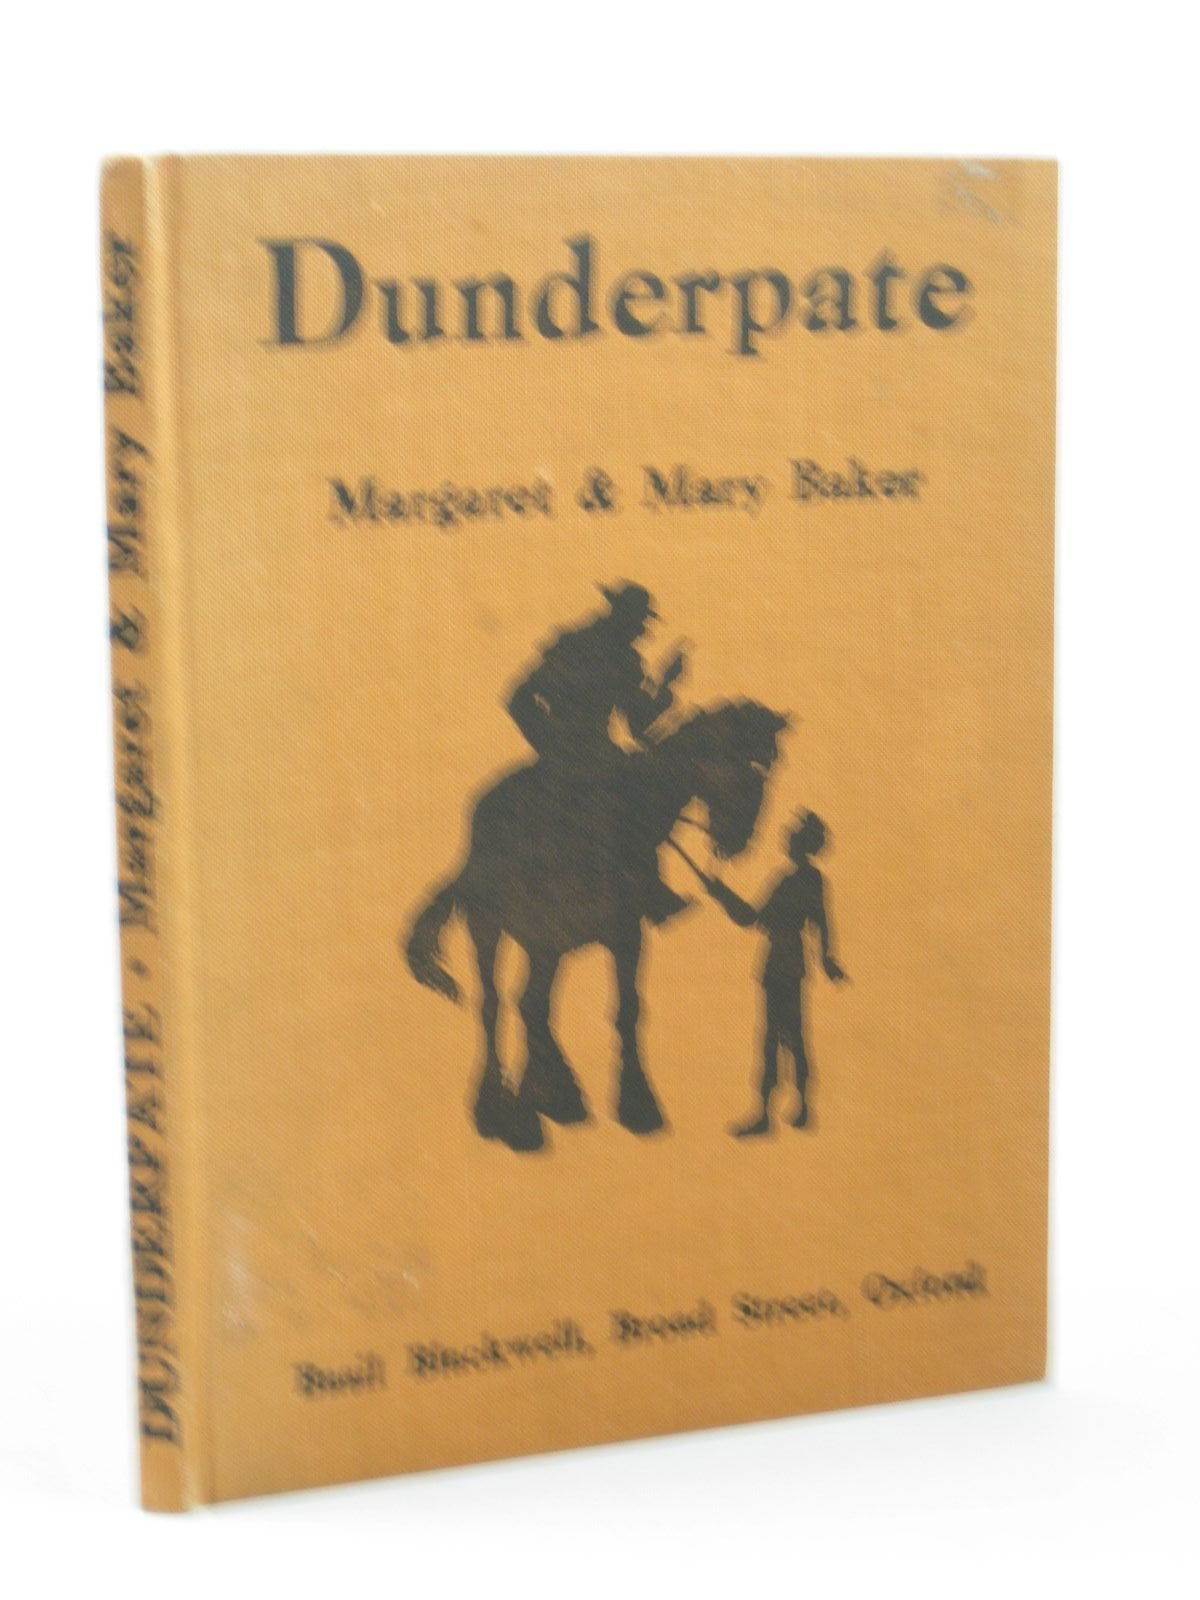 Dunderpate